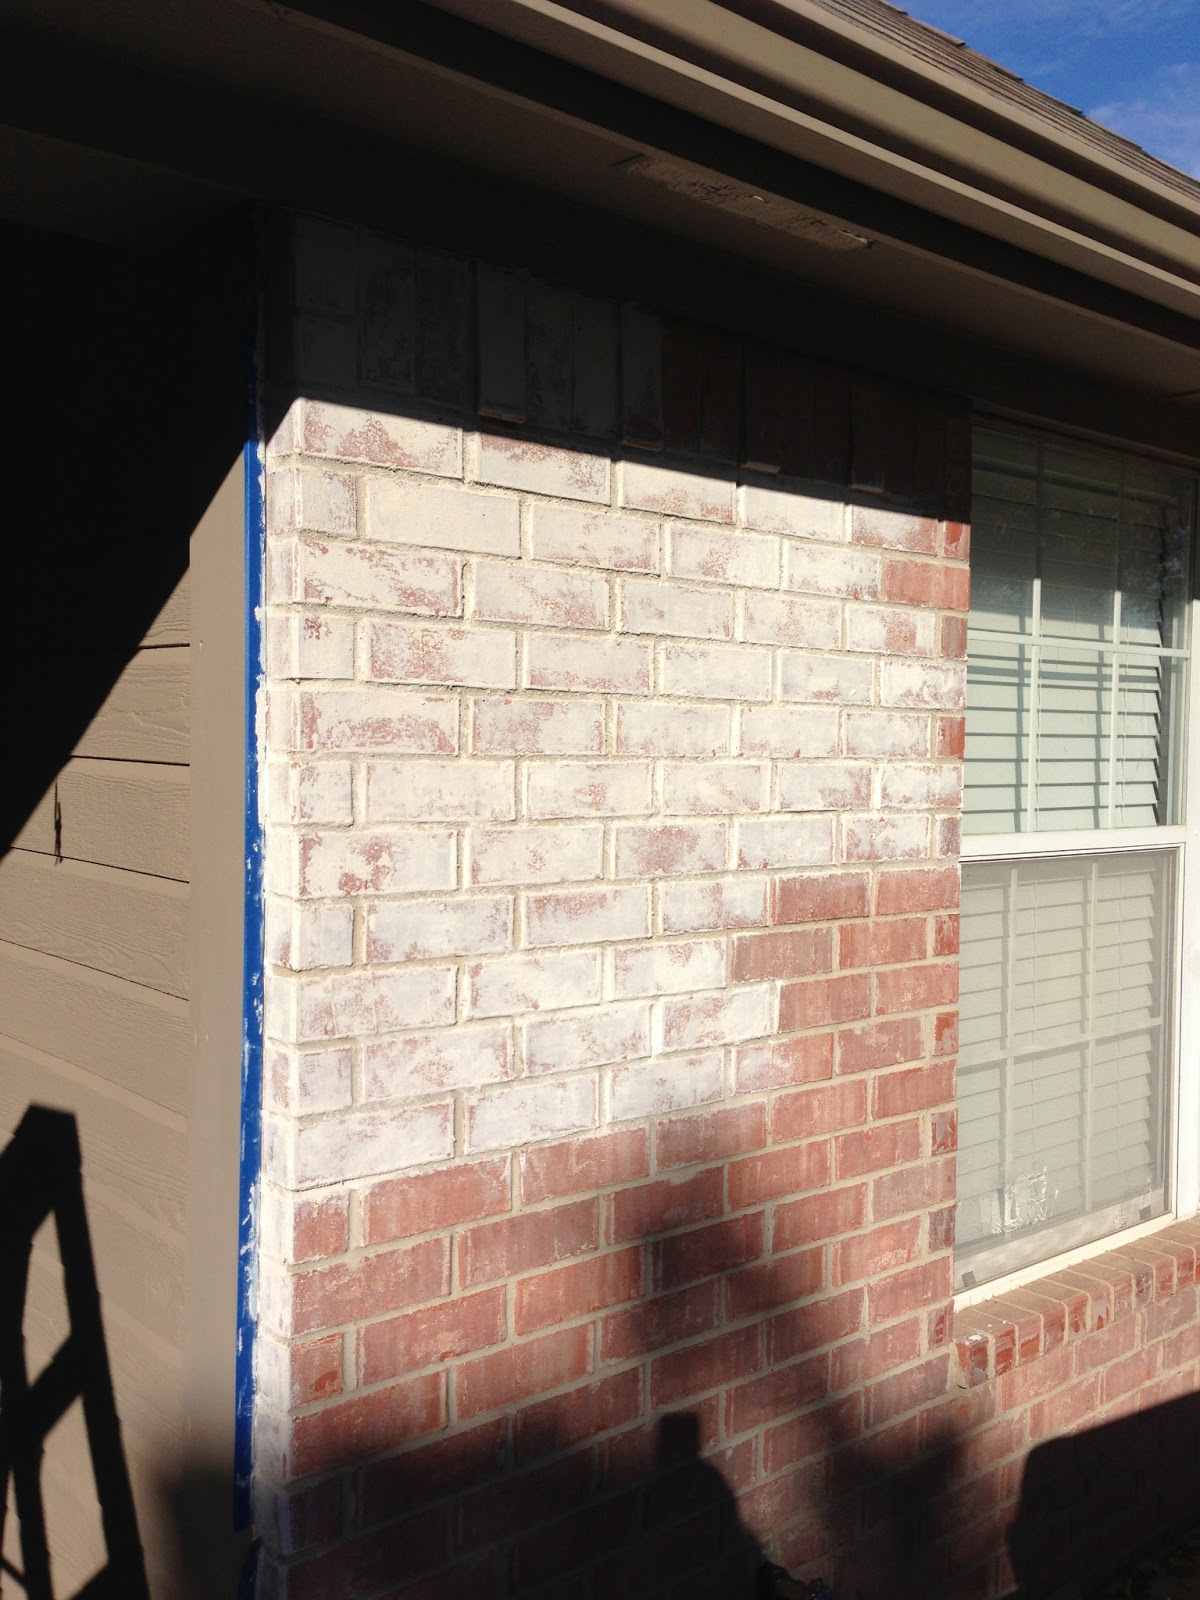 Preferred The white washed brick project | Kinda Frenchy - DIY repurposing  AG96